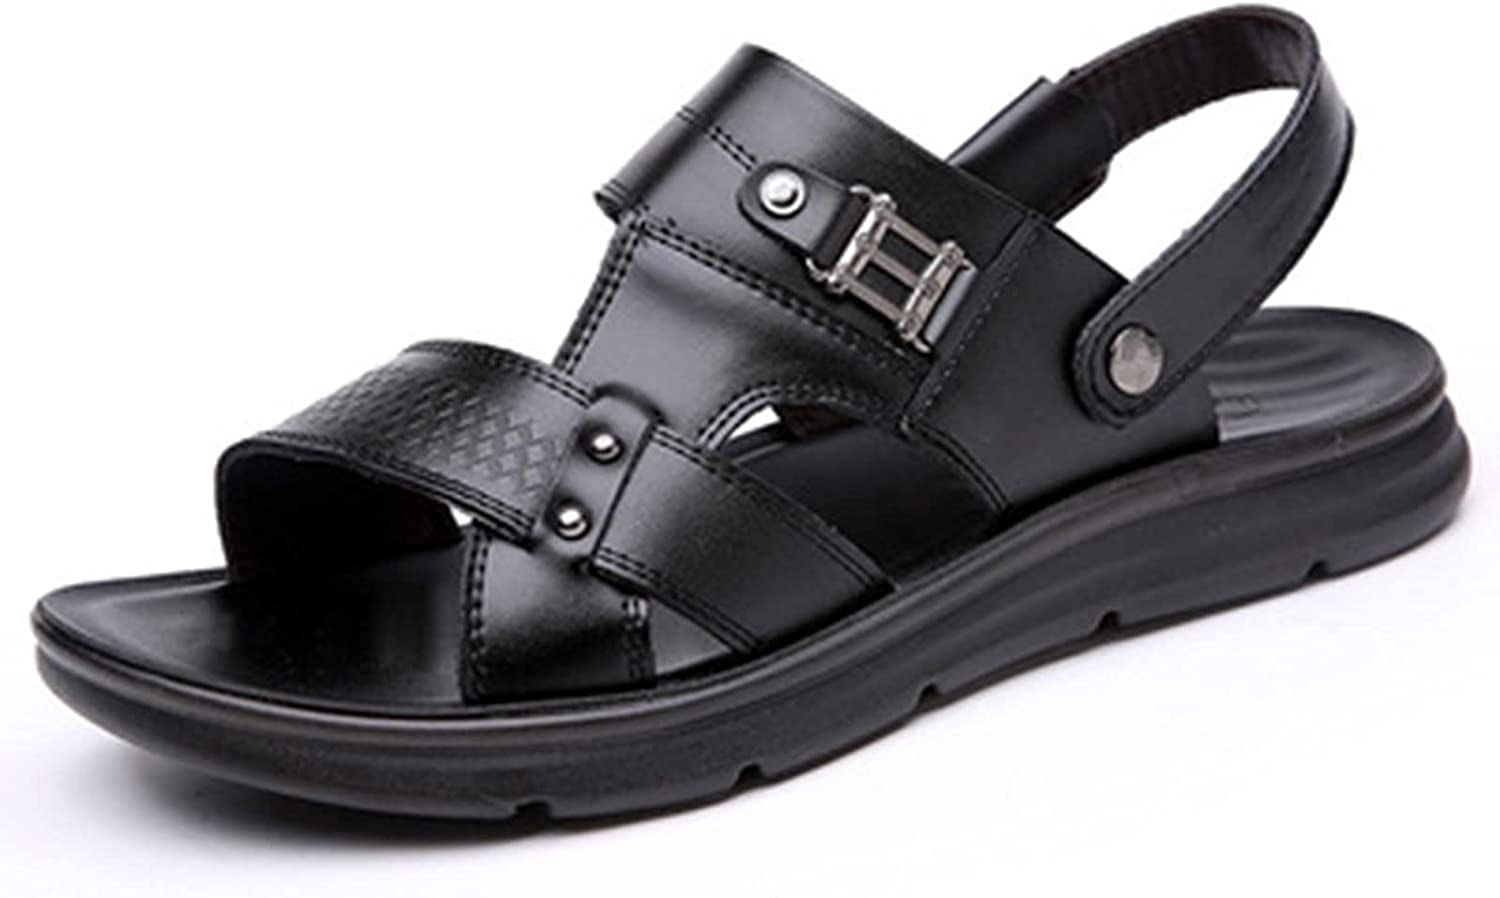 Footwear Summer Men's Sandals Outdoor Athletic Hiking flip Flops for Women's Fashion Elegant Open Toe Water Beach Sandals Casual Light Leather Thick Bottom Shoes (Color : Black, Size : 39)